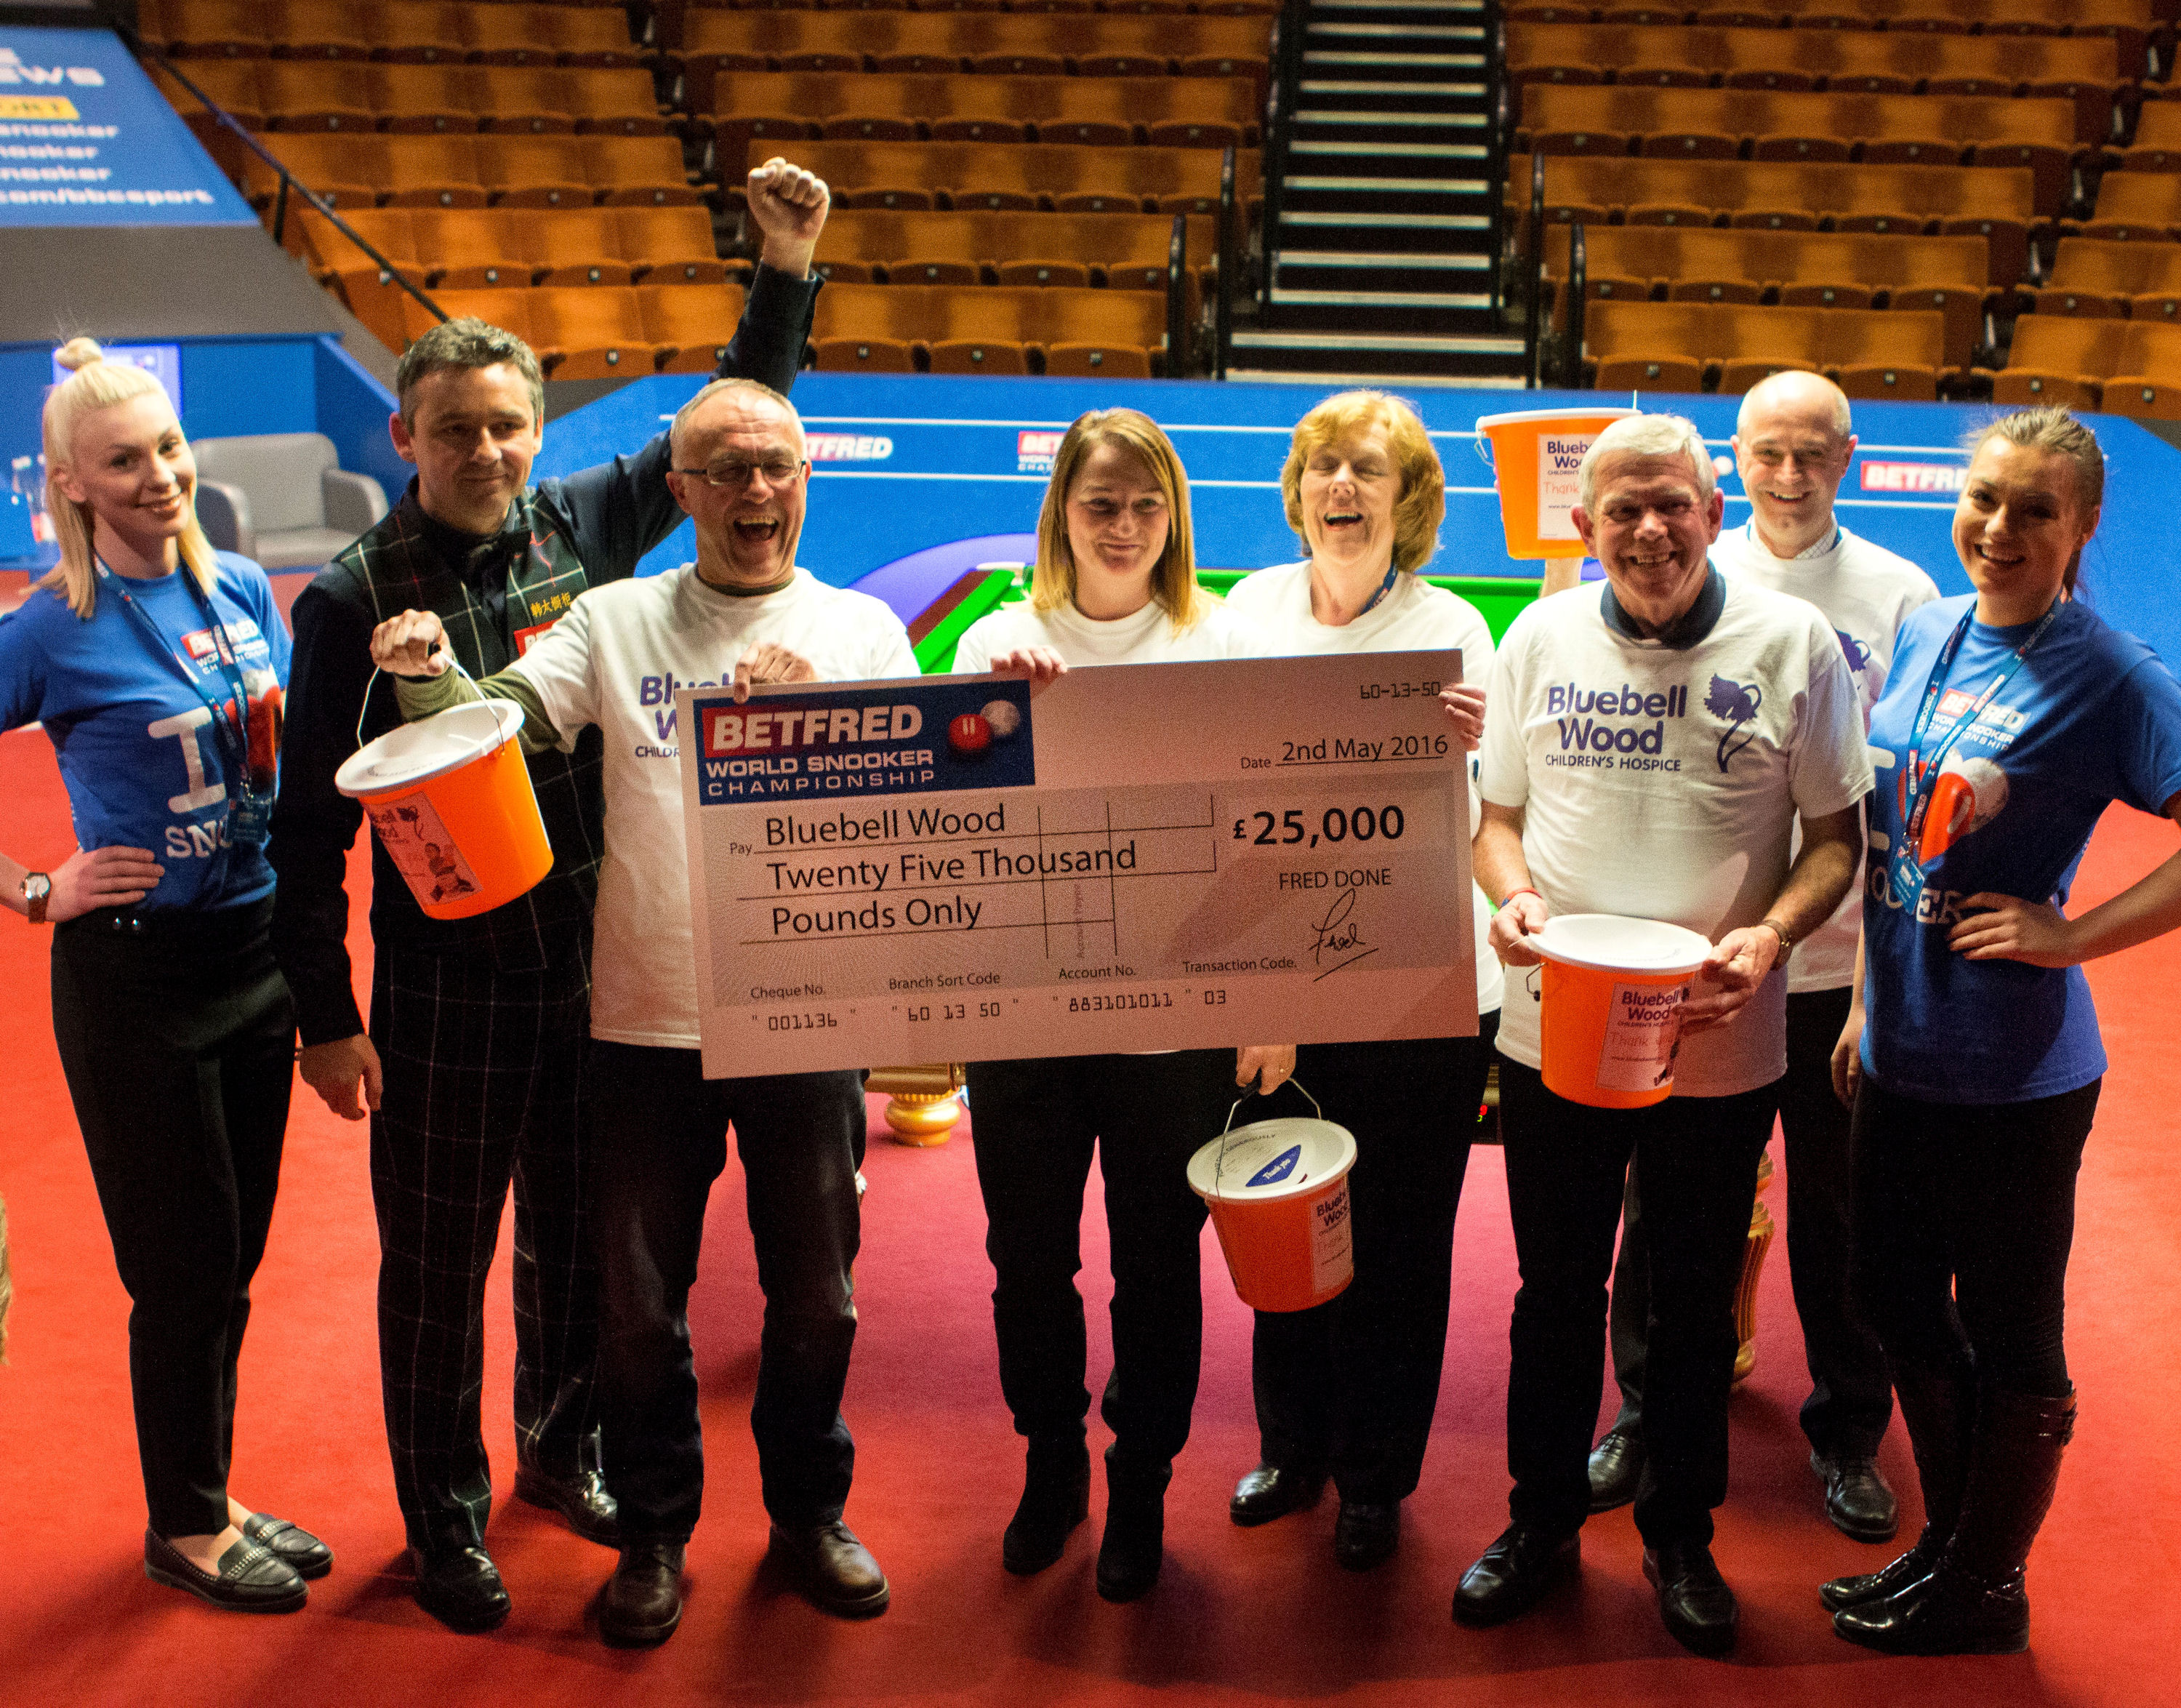 Alan McManus presents a cheque from Betfred to Bluebell Wood volunteers